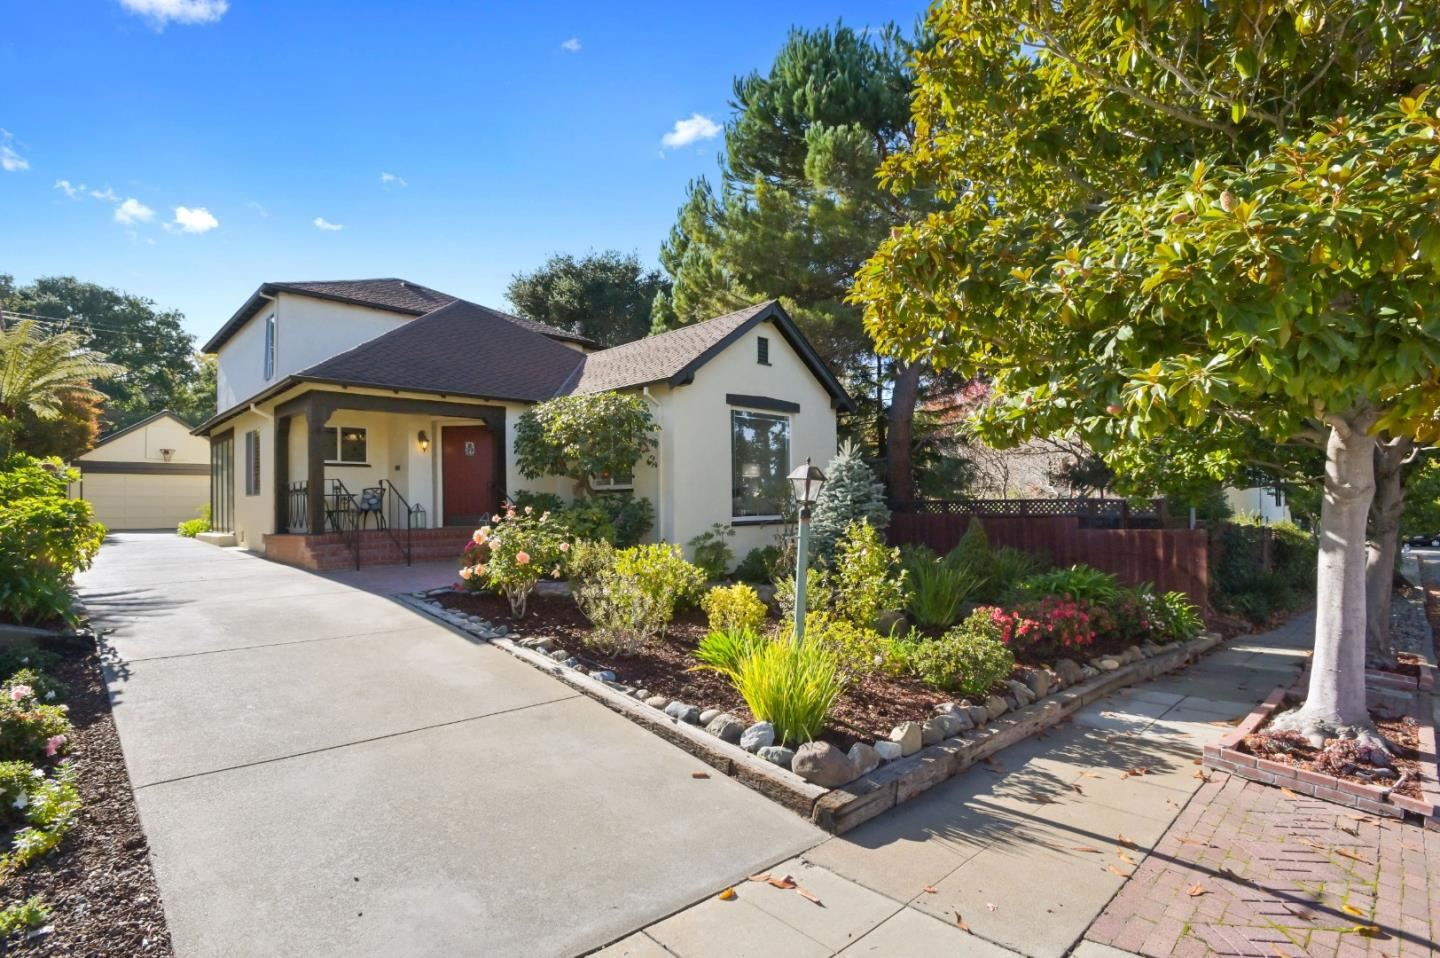 Photo for 1431 Carlos AVE, BURLINGAME, CA 94010 (MLS # ML81819765)